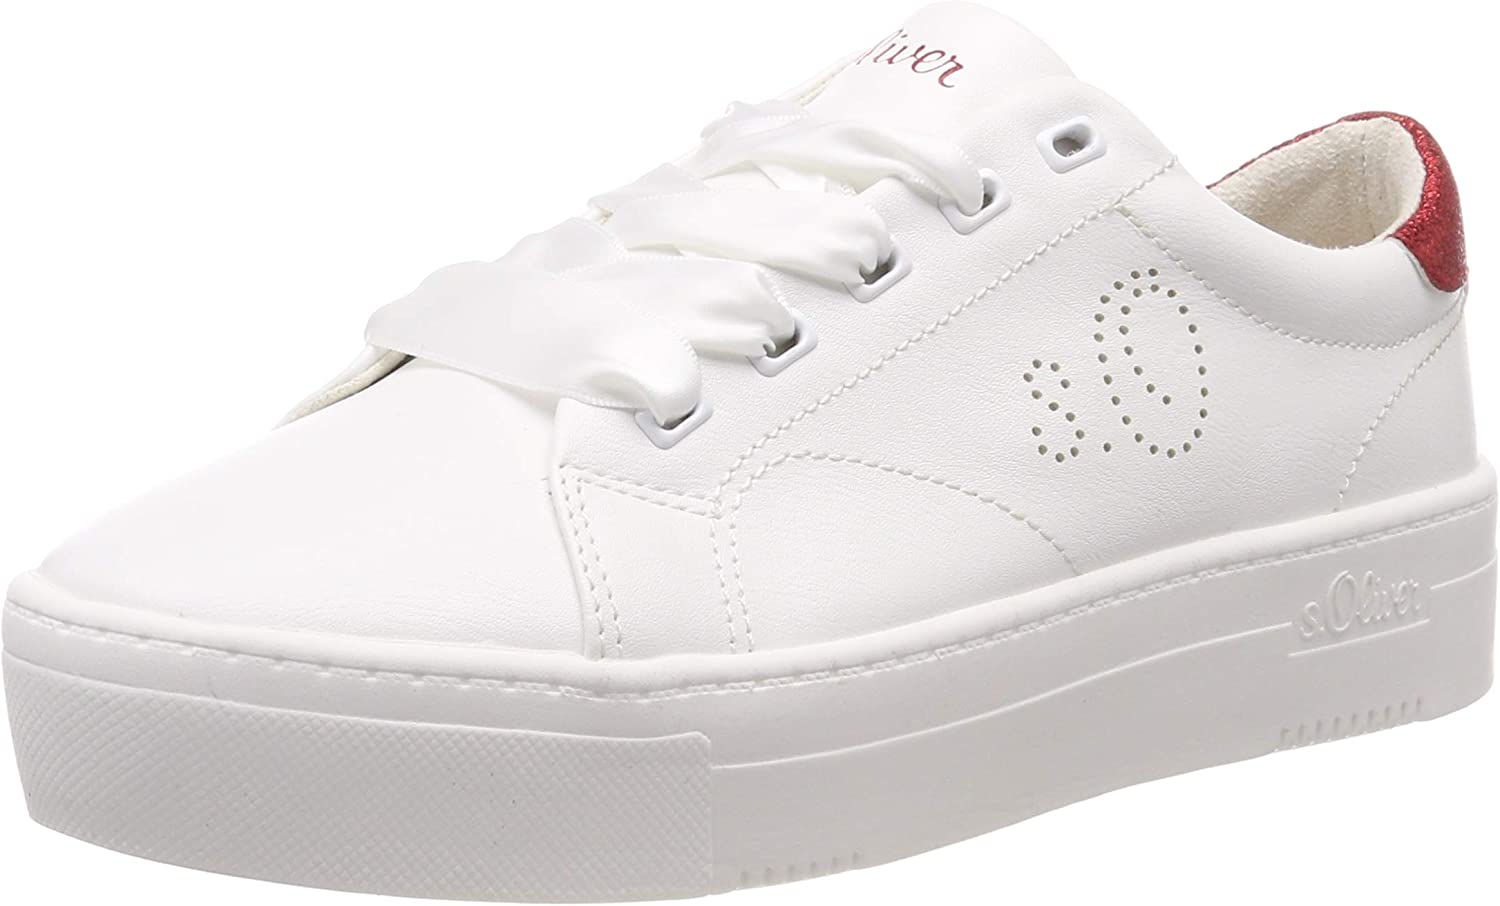 S.Oliver Women's 5-5-23632-22 100 Low-Top Sneakers